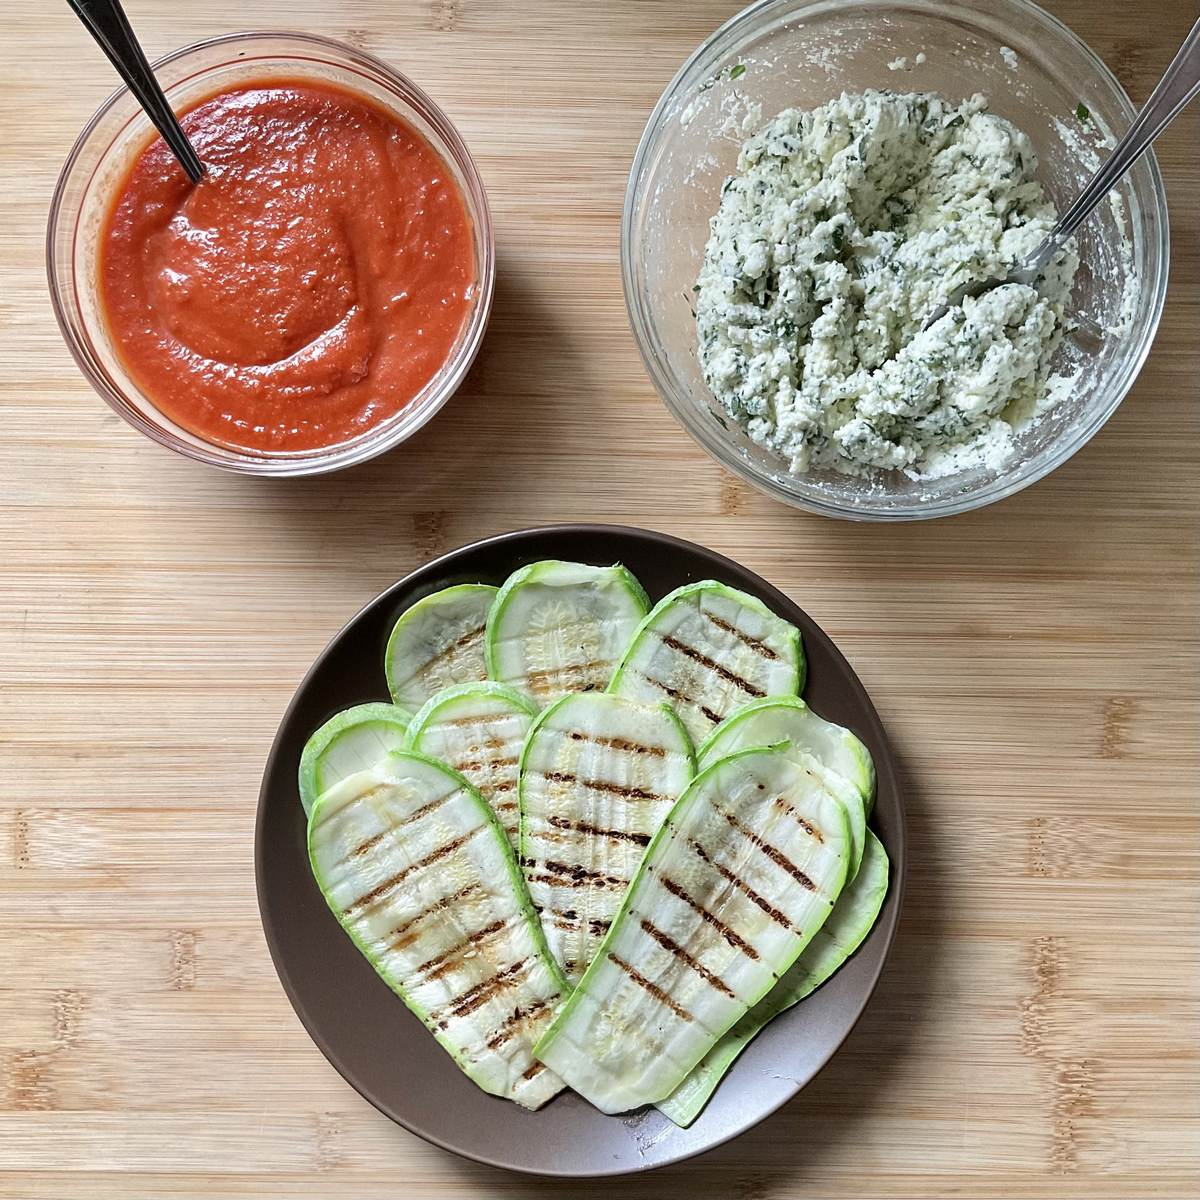 Grilled zucchini, marinara sauce and ricotta filling on a wooden surface.